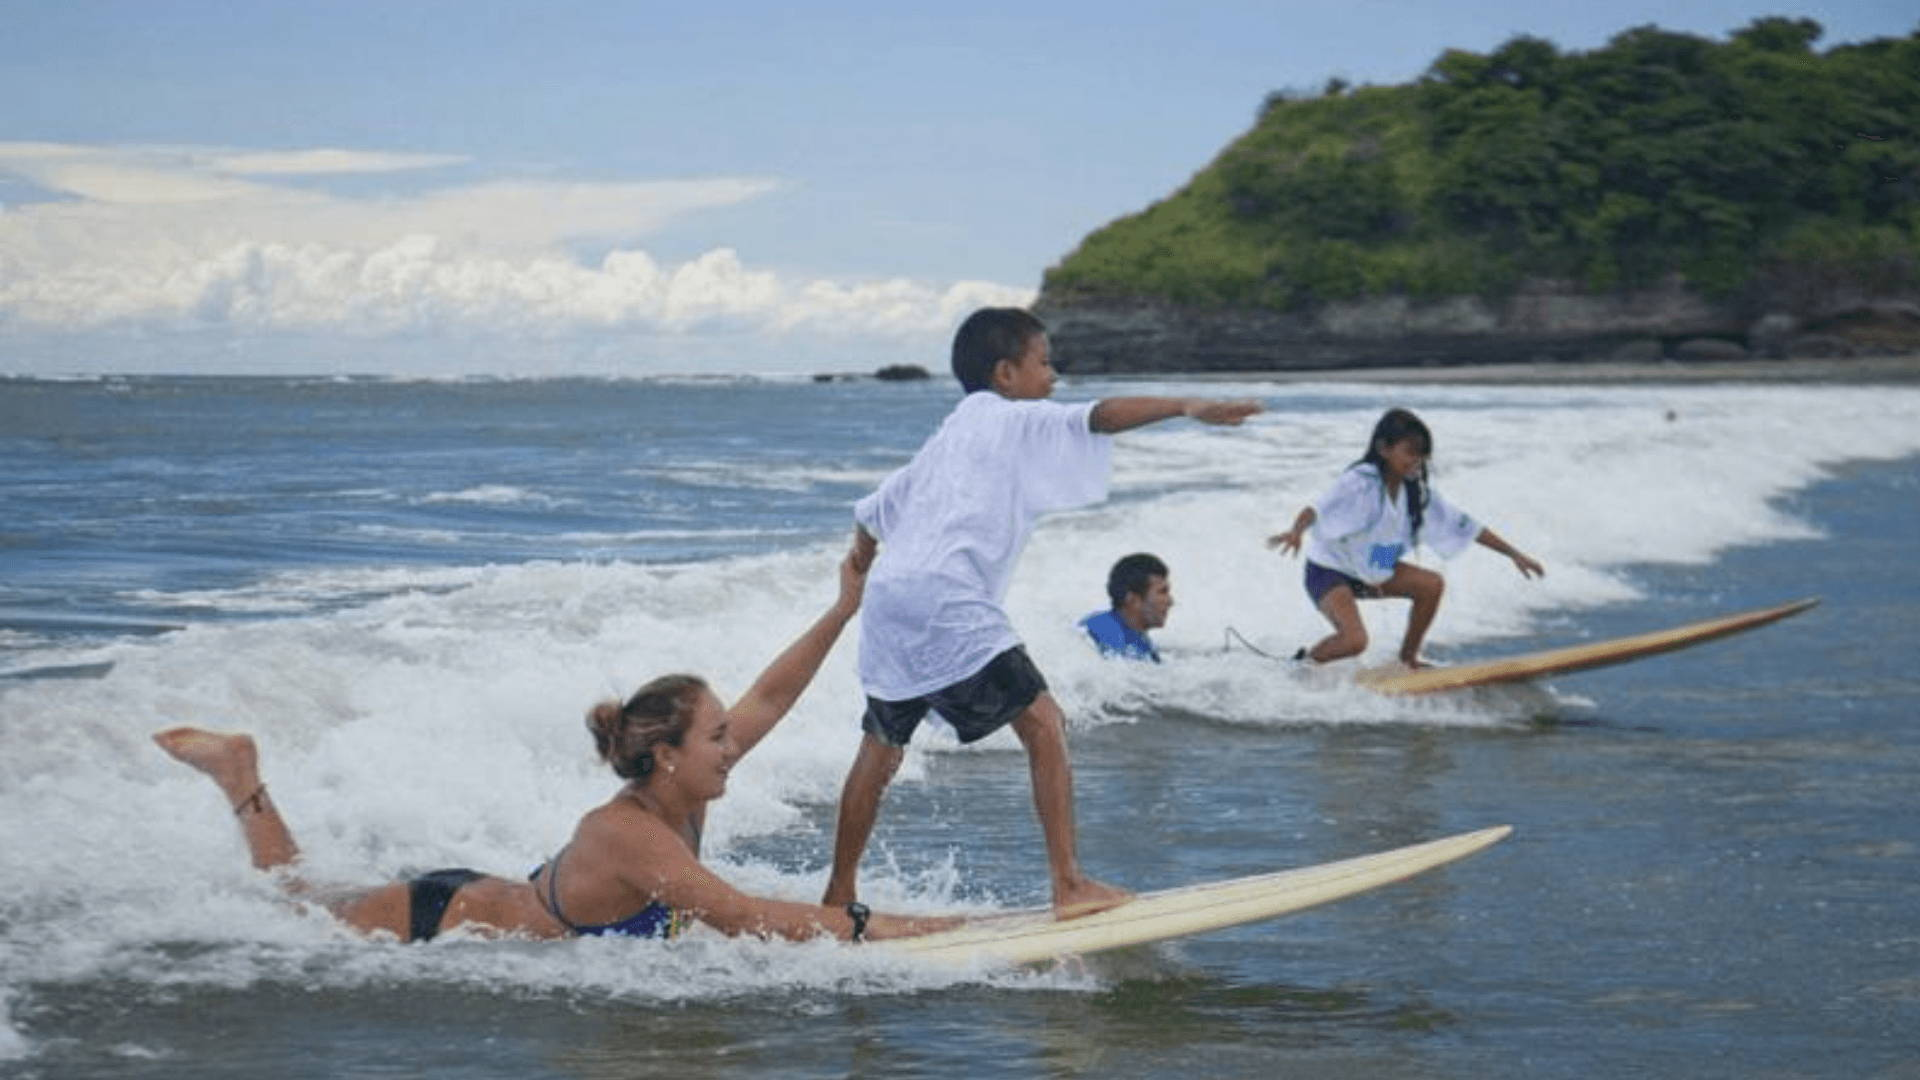 Inspire A Kid To Surf, Change A Life